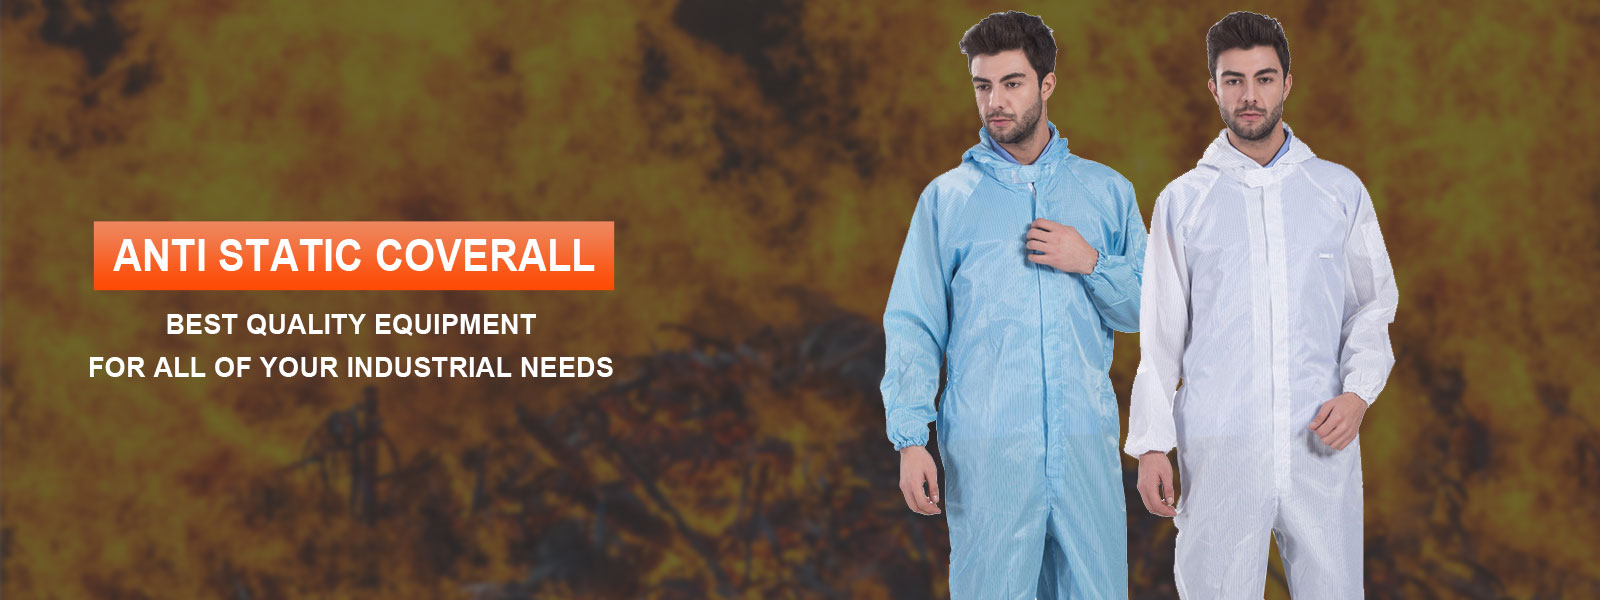 Anti Static Coverall Manufacturers in Andhra Pradesh